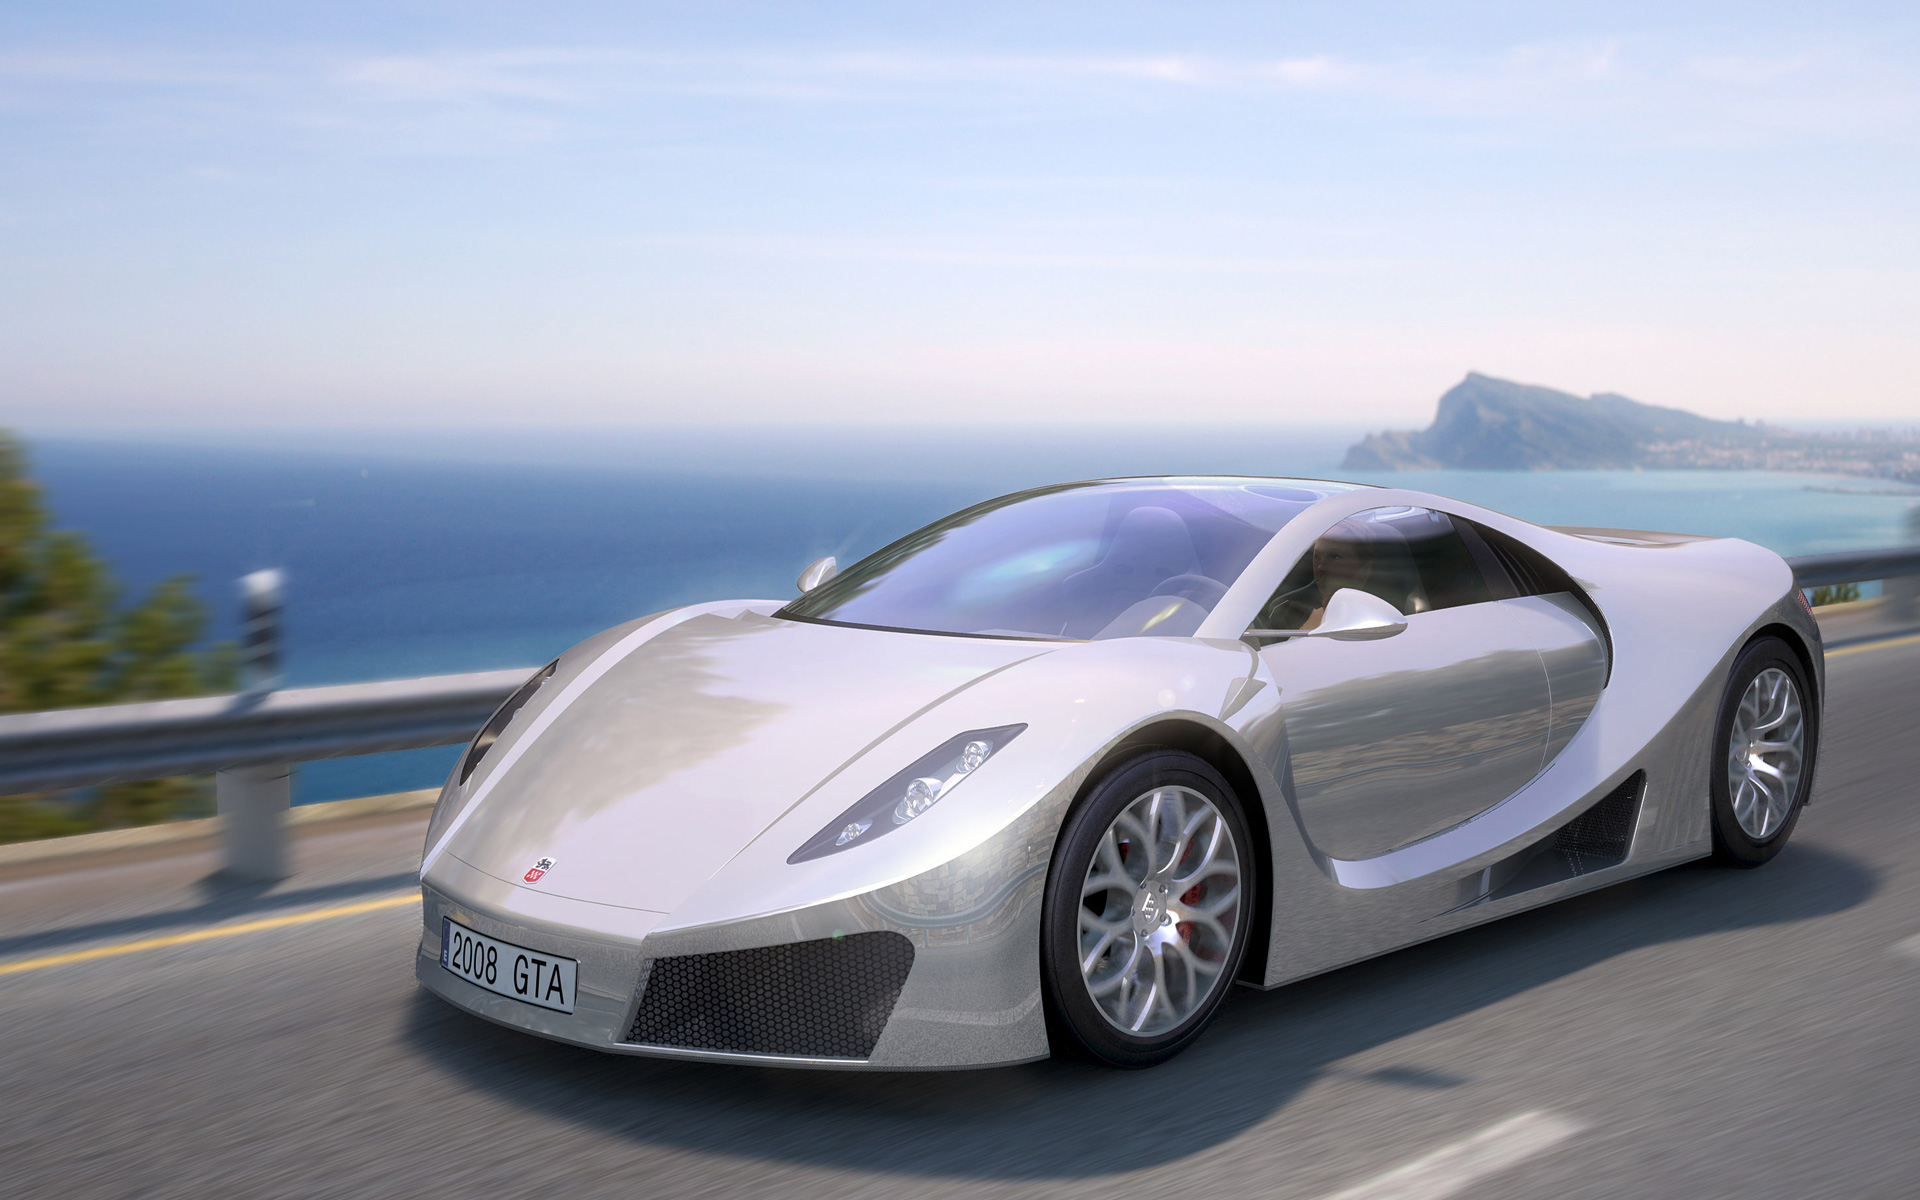 GTA Concept Super Sport Car 3 Wallpapers HD Wallpapers 1920x1200